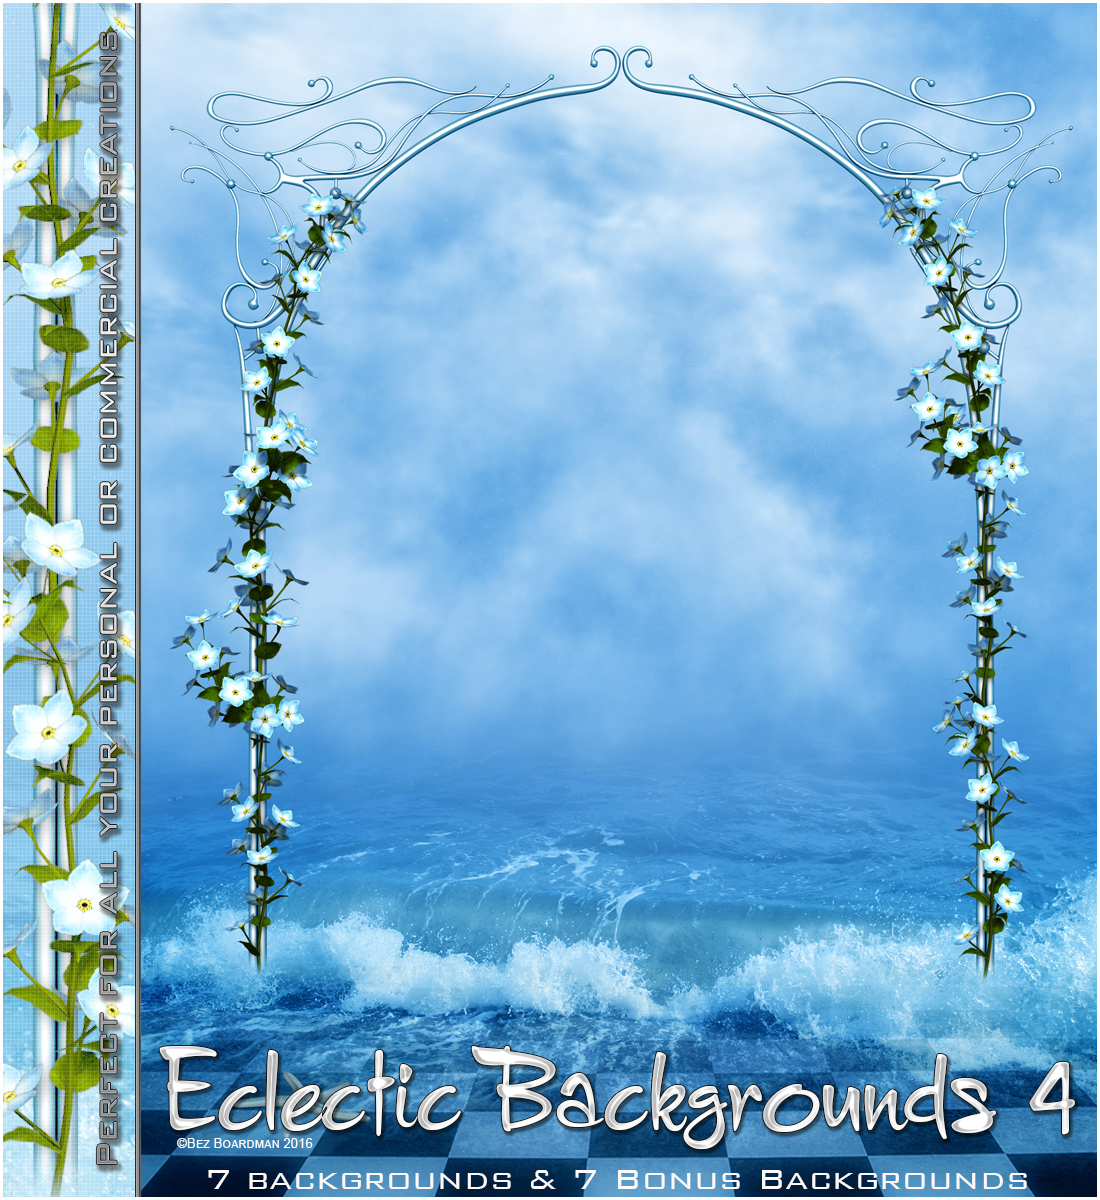 Eclectic Backgrounds 4